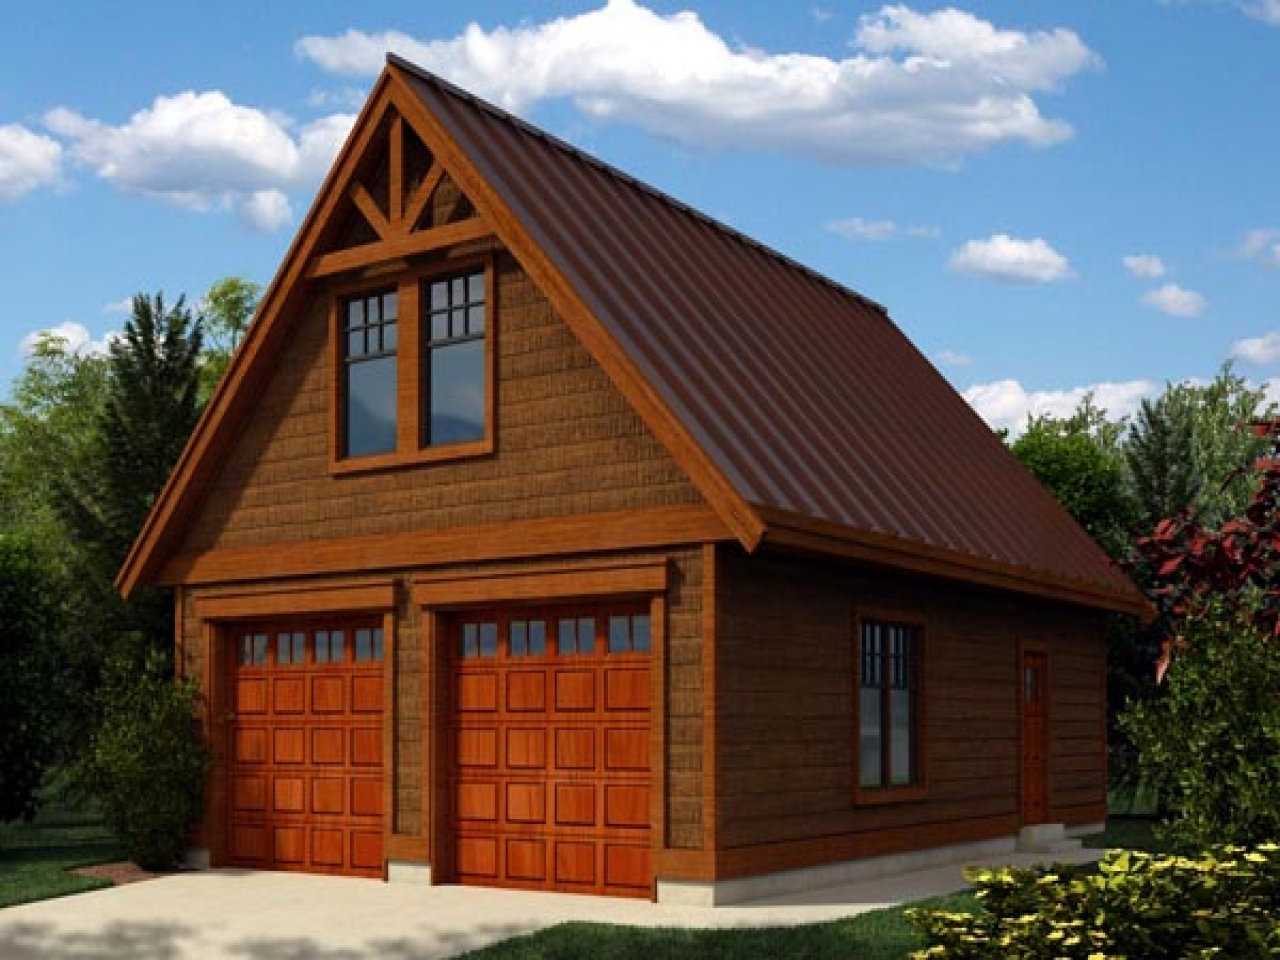 Garage plans with loft contemporary garage plans with loft for Log home plans with garage